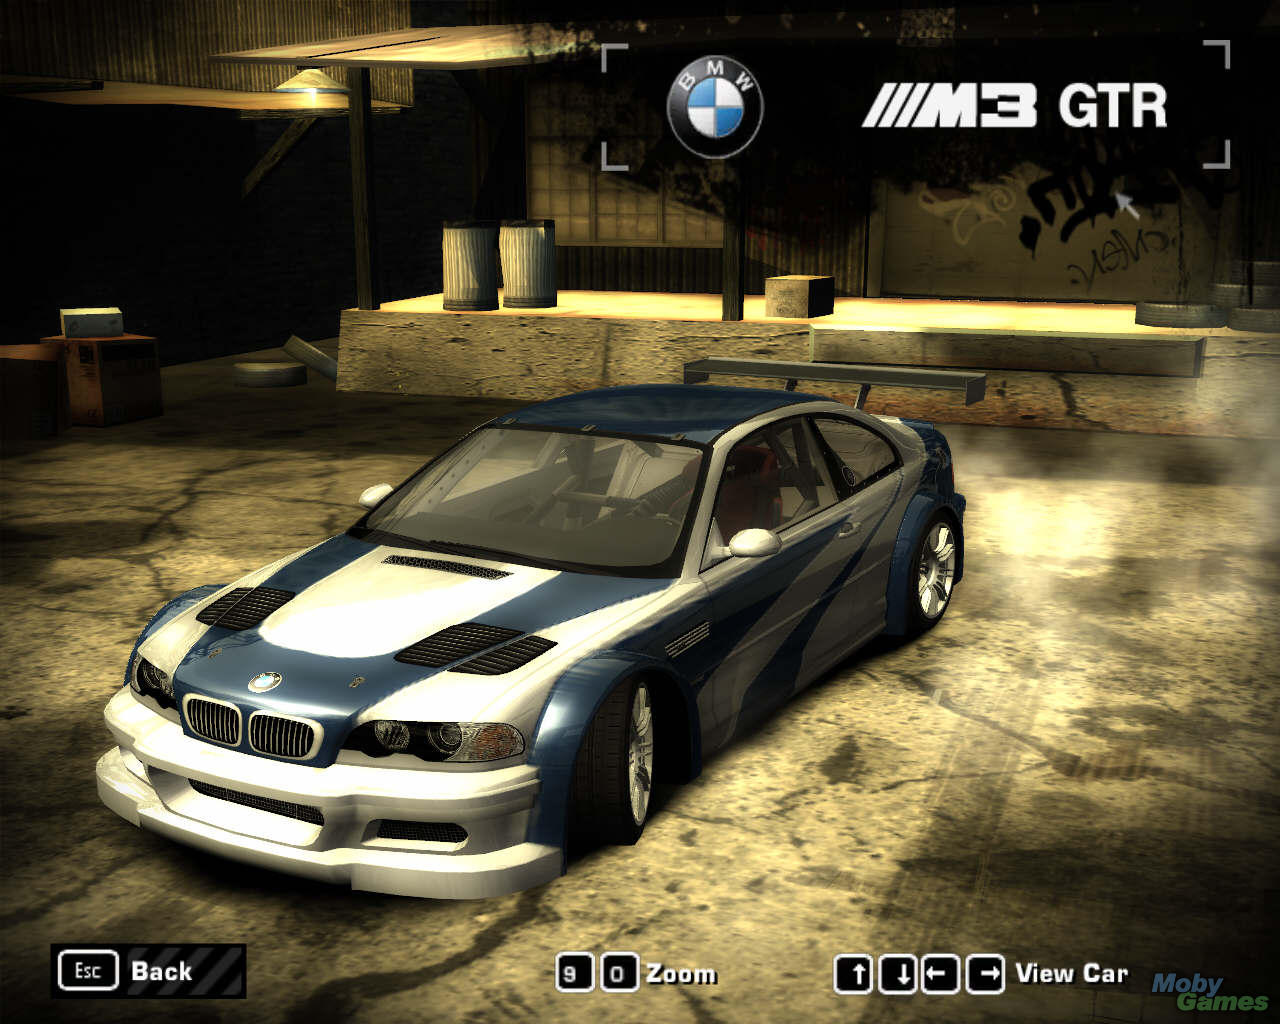 Need for speed most wanted black edition full pc game for Need for speed most wanted full